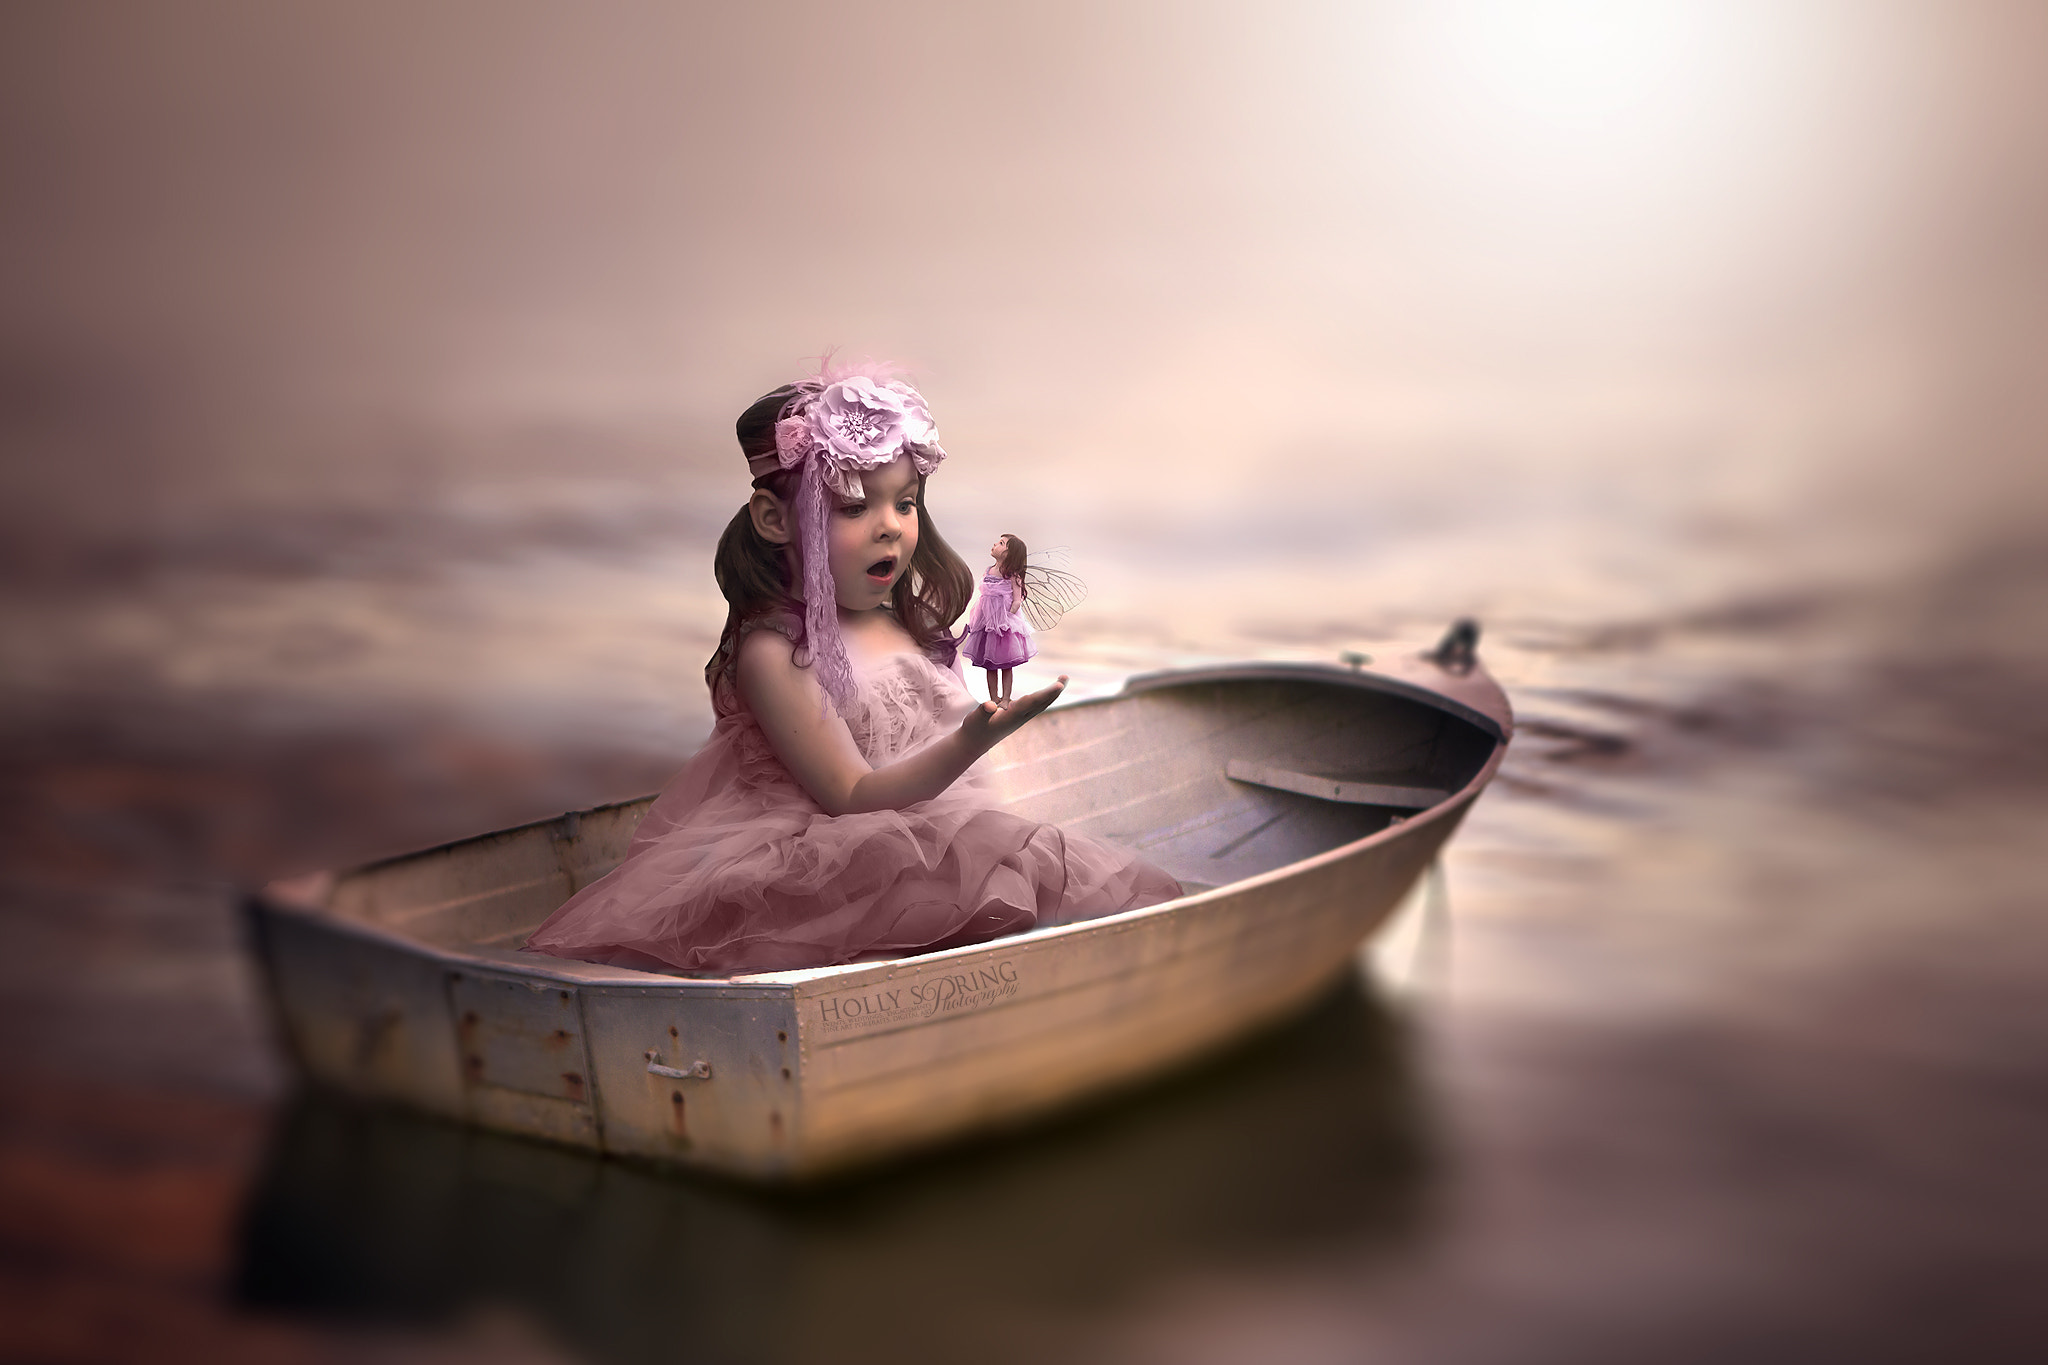 Photograph The Faerie Navigator by Holly Spring on 500px